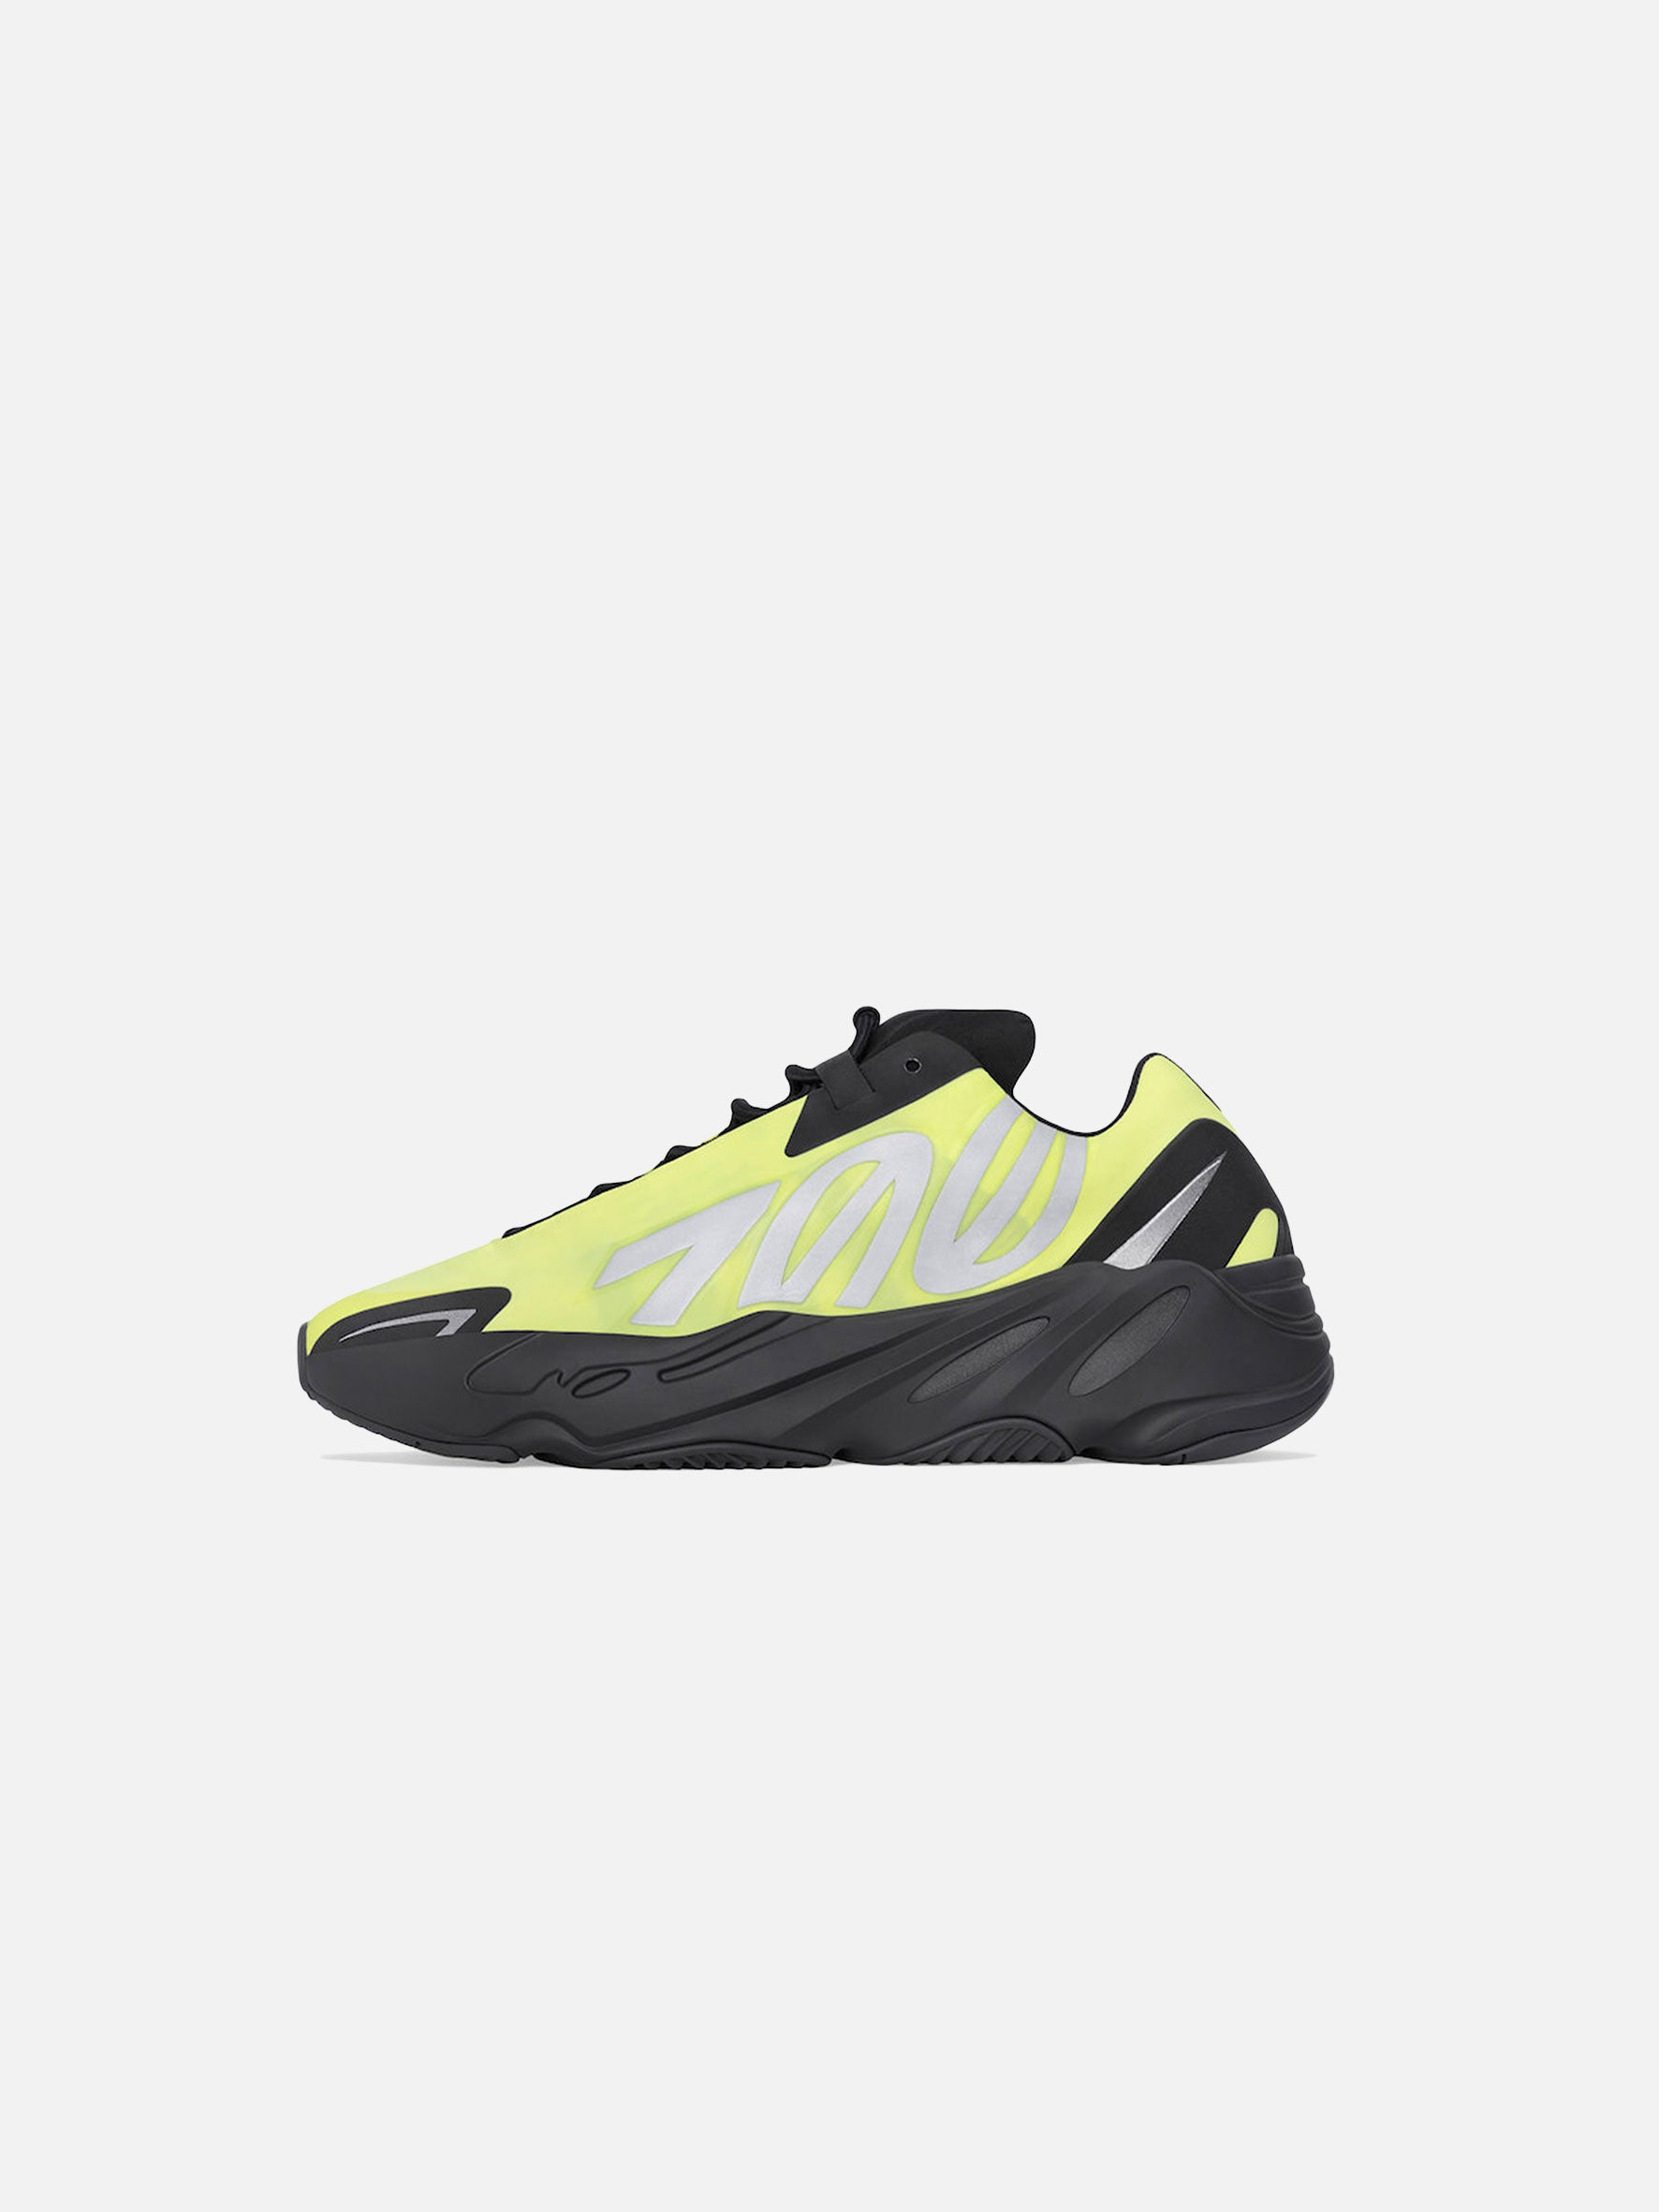 YEEZY Boost 700 MNVN Phosphorus